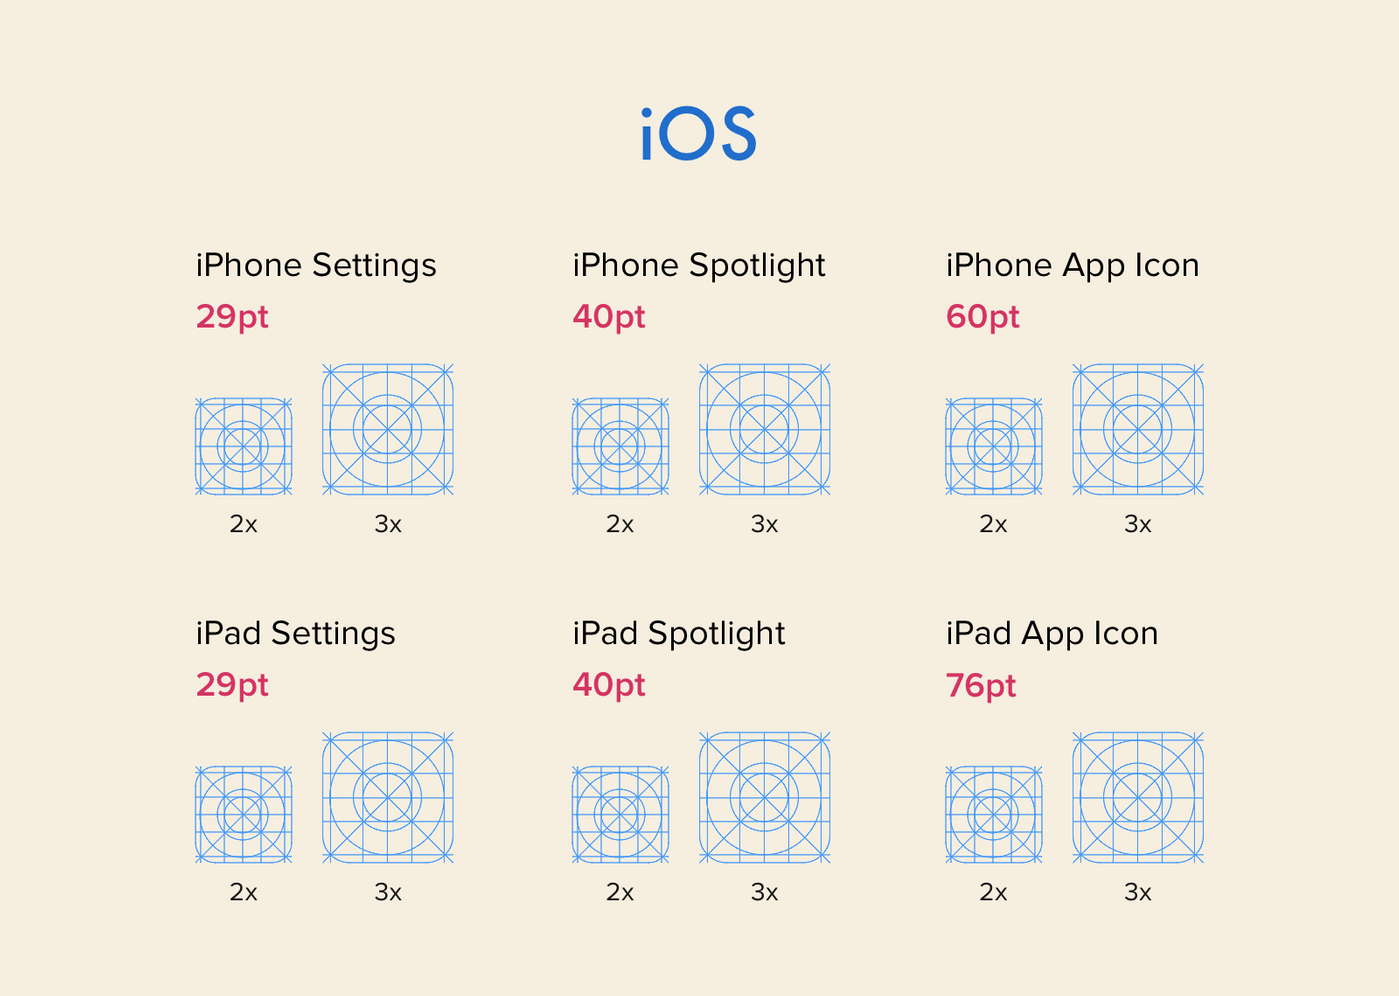 iOS size greed